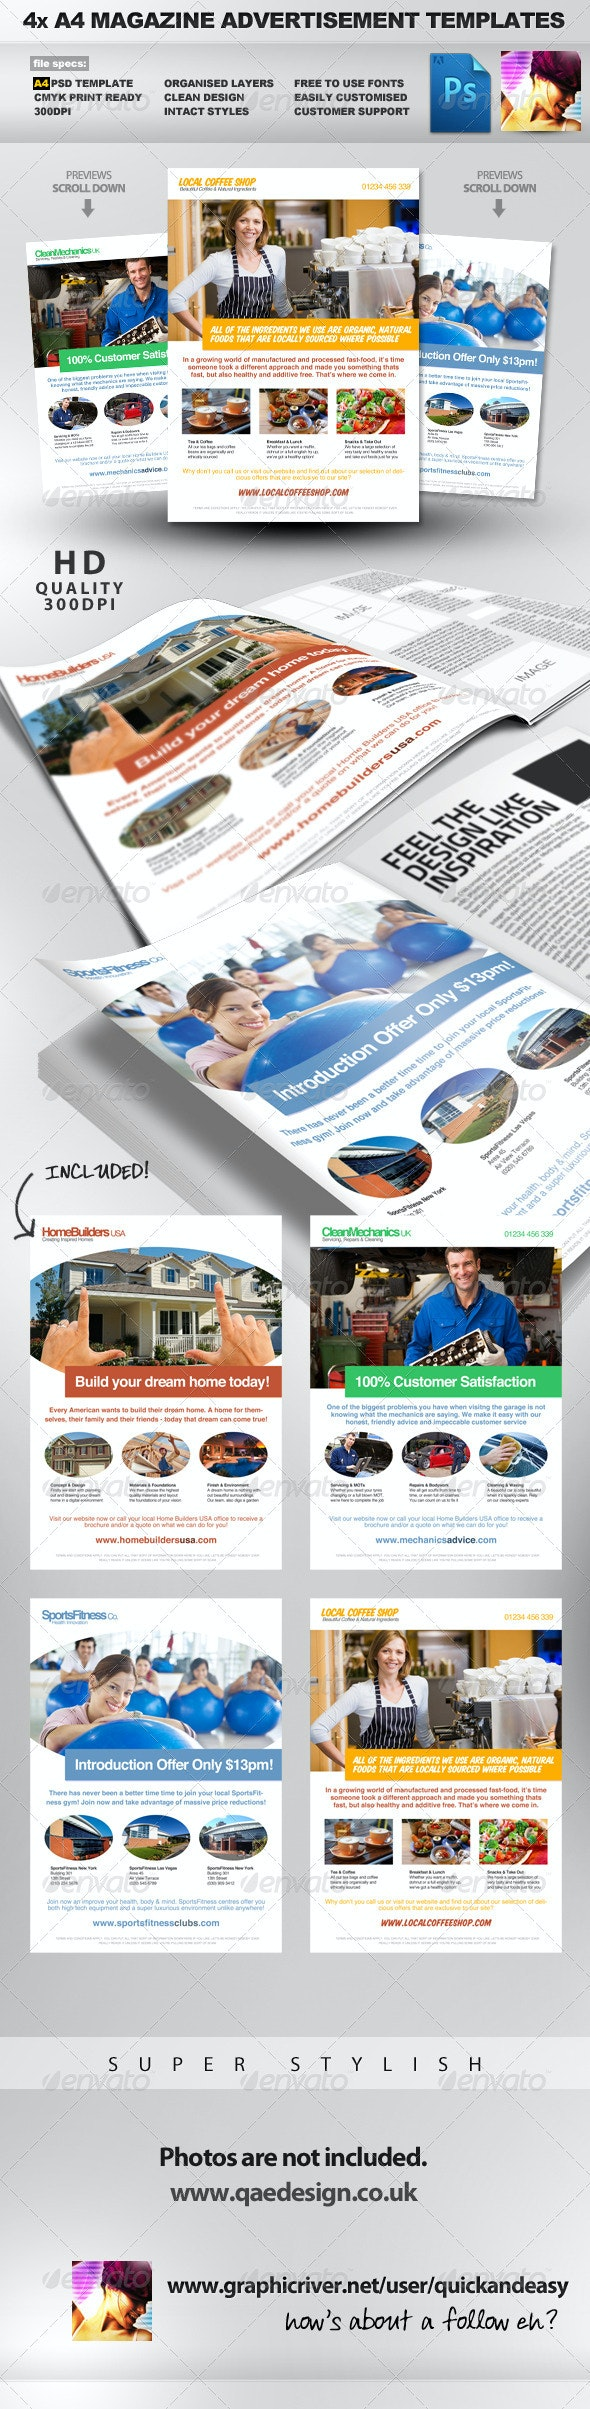 4x Clean Magazine Advertisement Templates - Magazines Print Templates